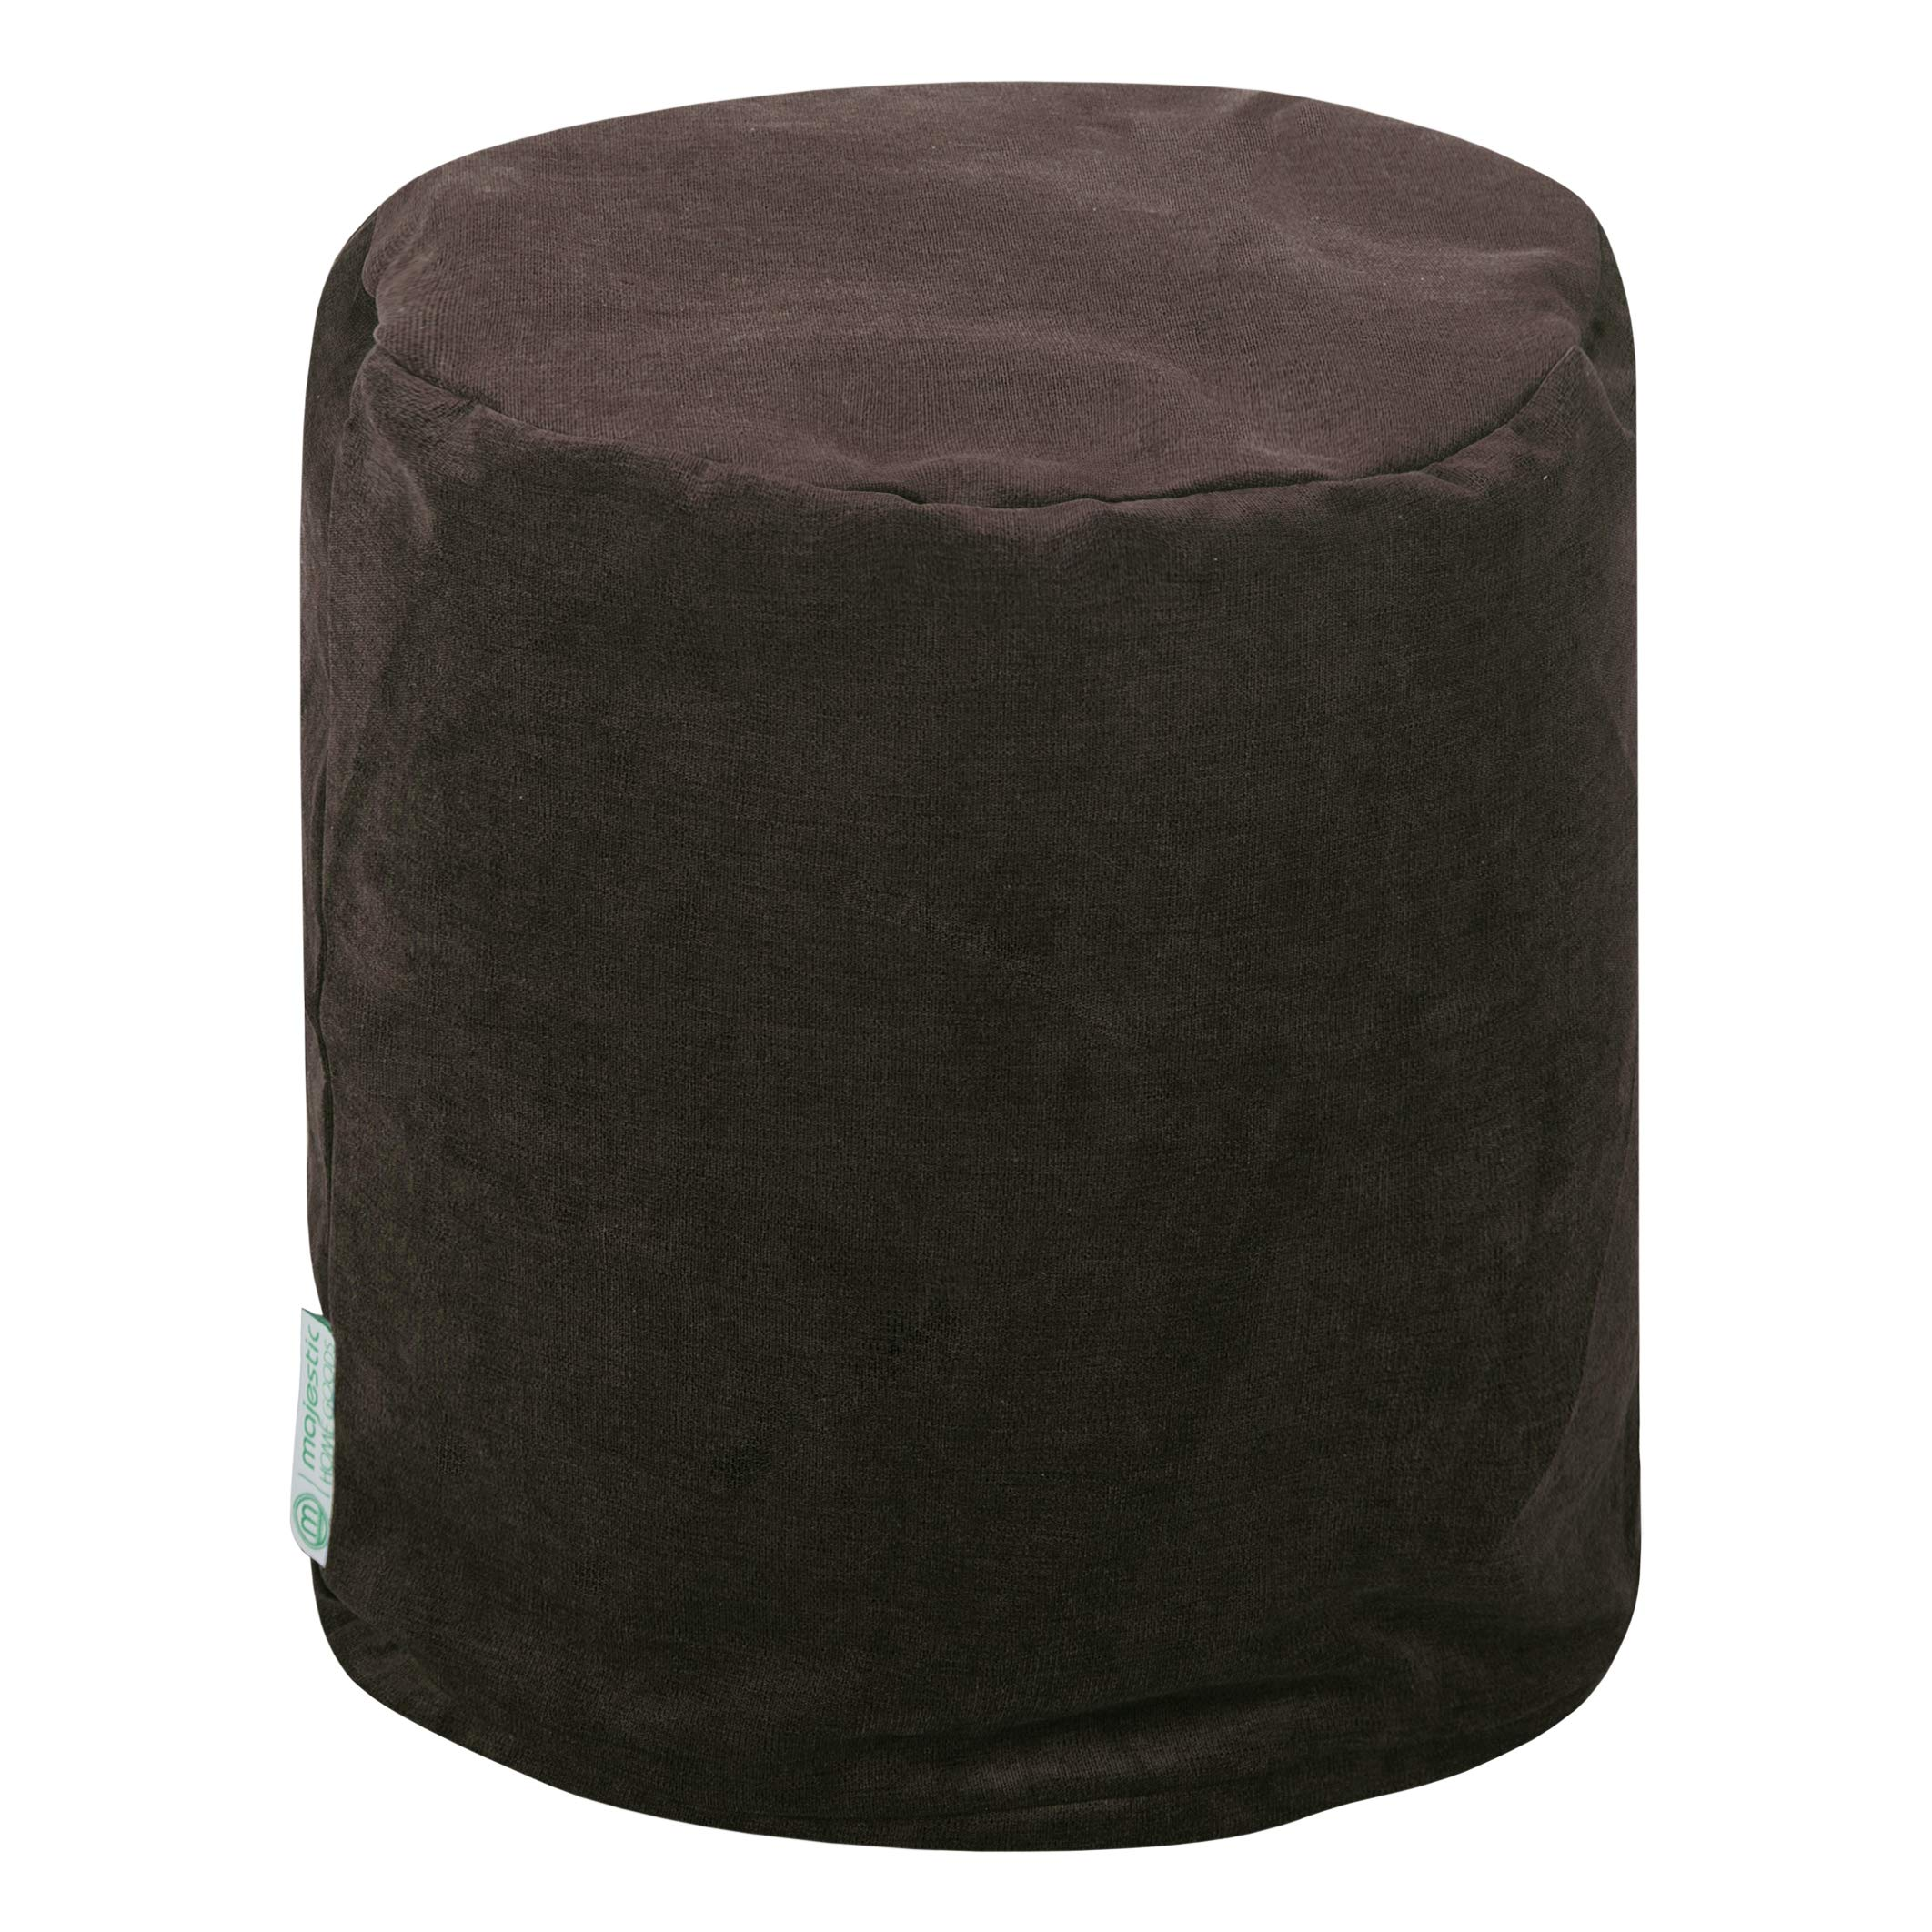 Majestic Home Goods Storm Villa Indoor Bean Bag Ottoman Pouf 16'' L x 16'' W x 17'' H